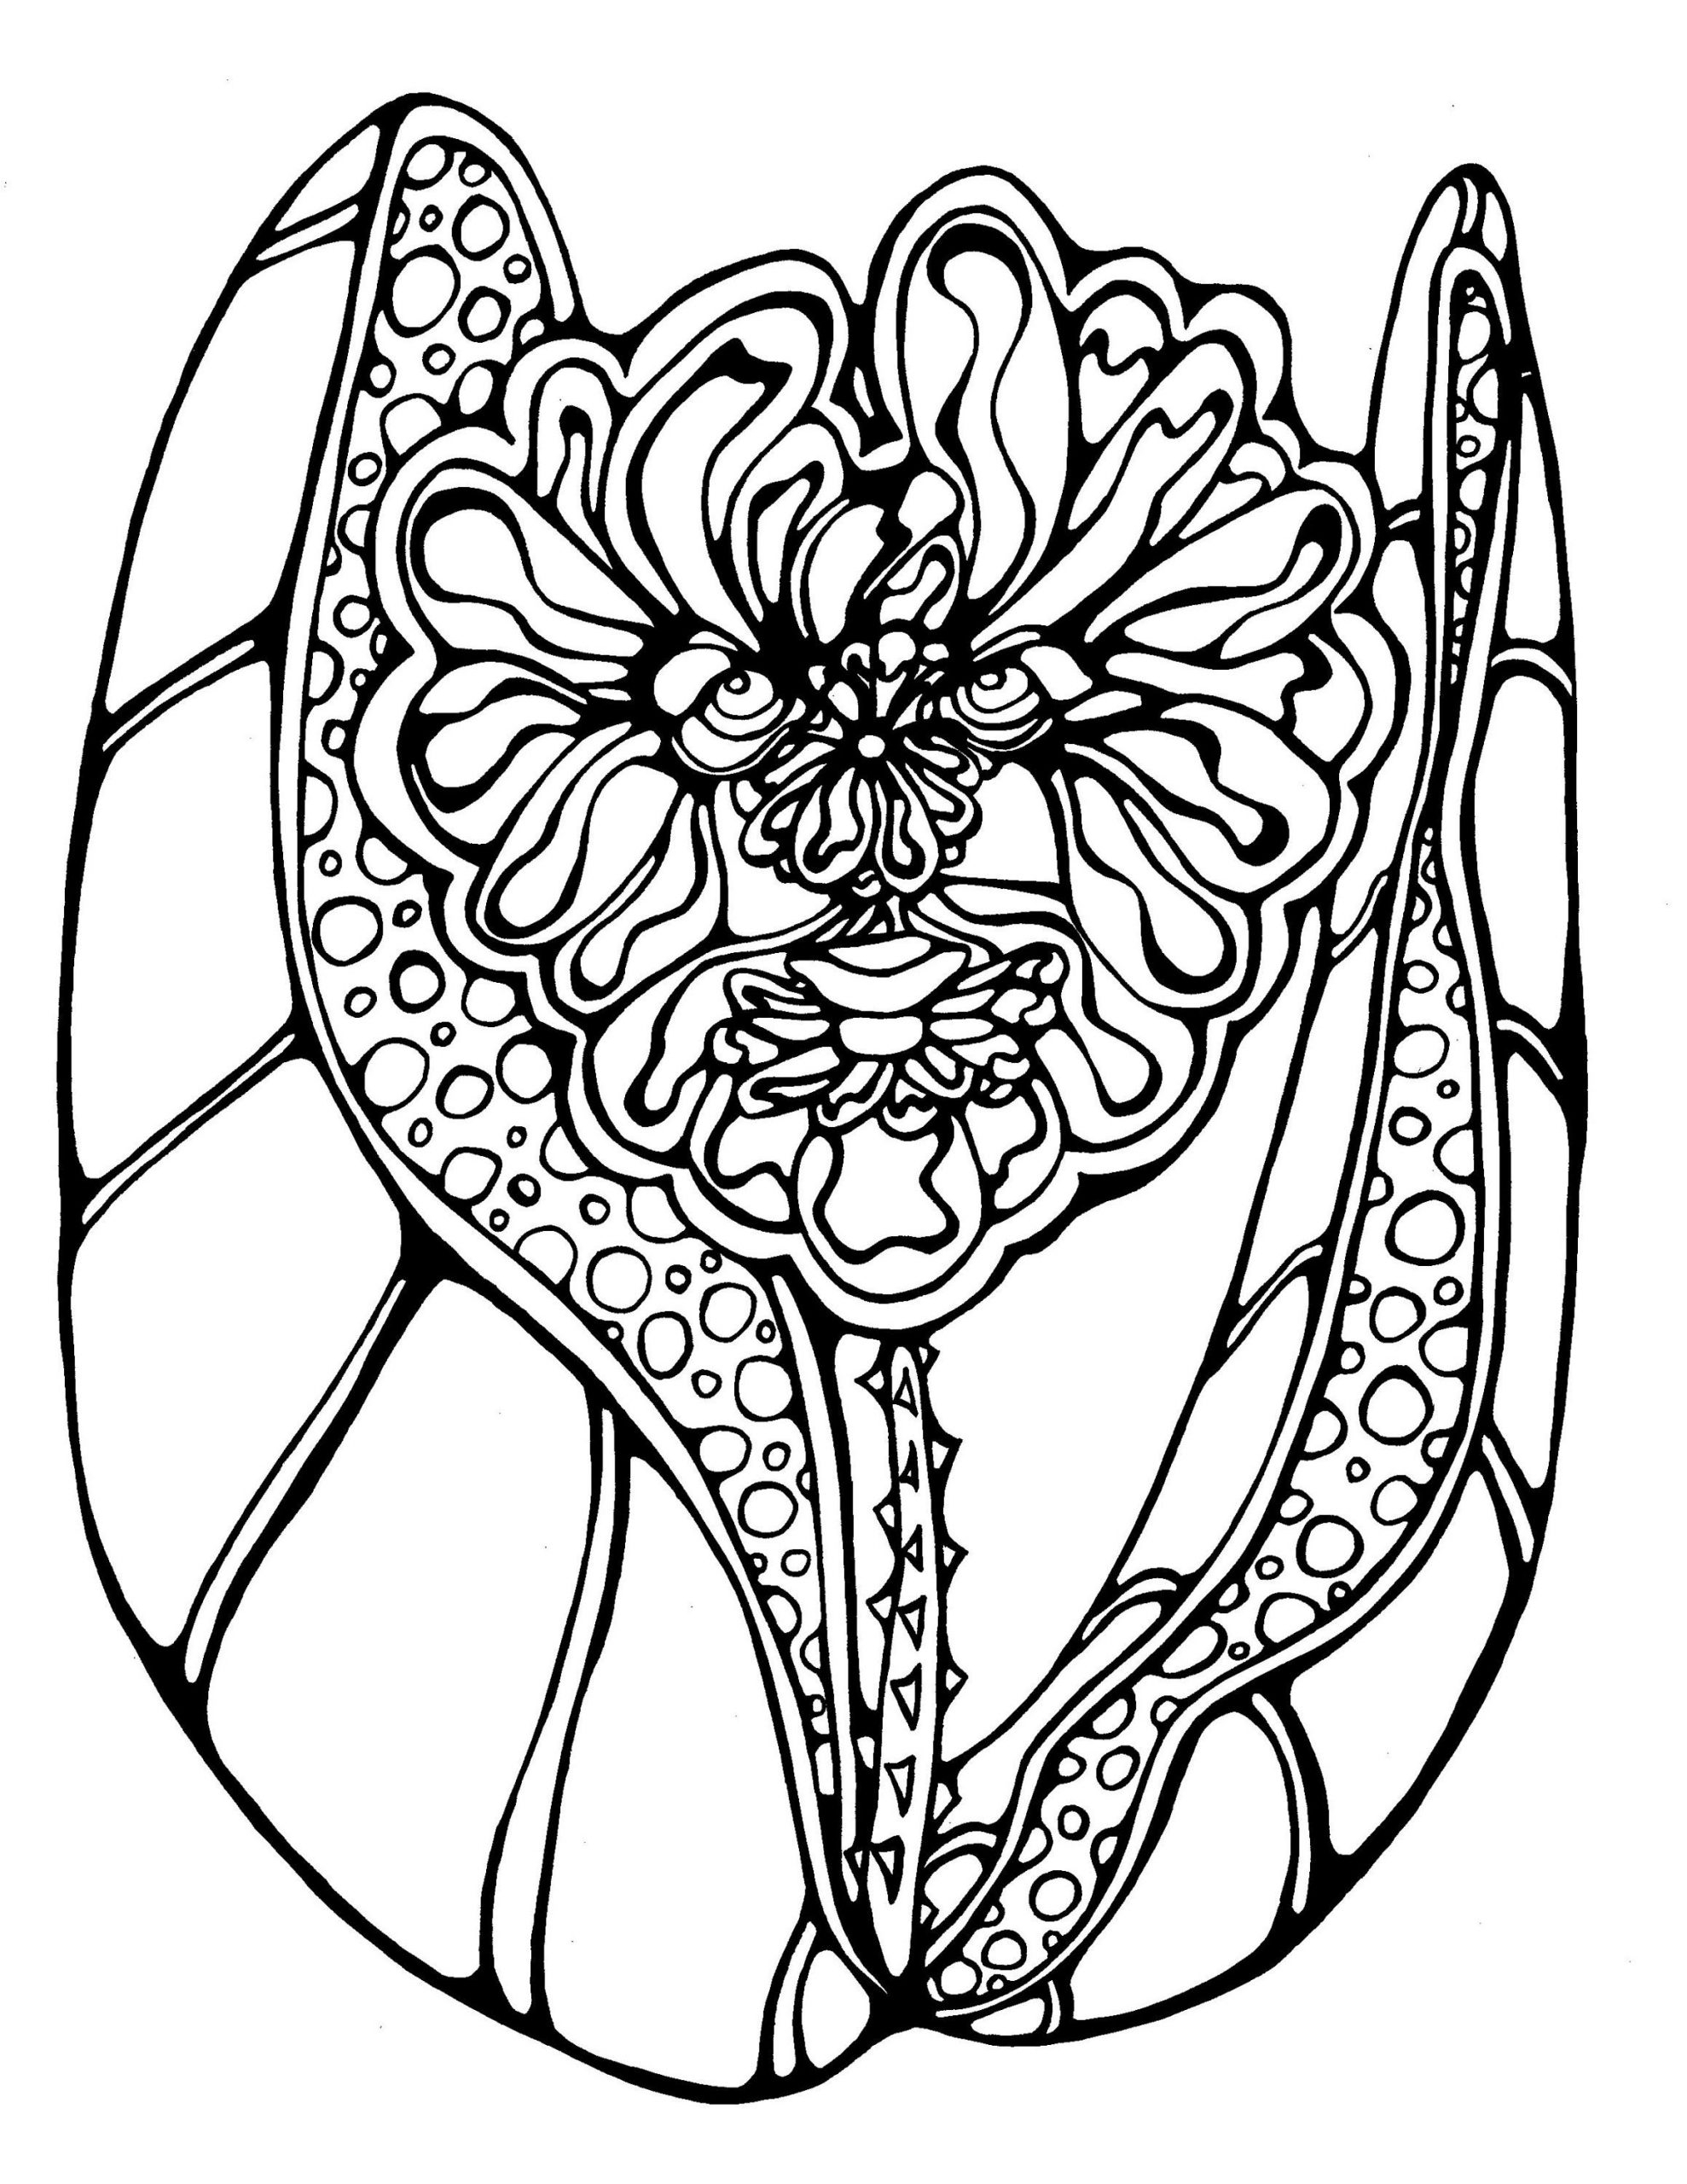 Downloadable Coloring Book Page, Plant Man With Printables Pictures Of Mens On A Mission